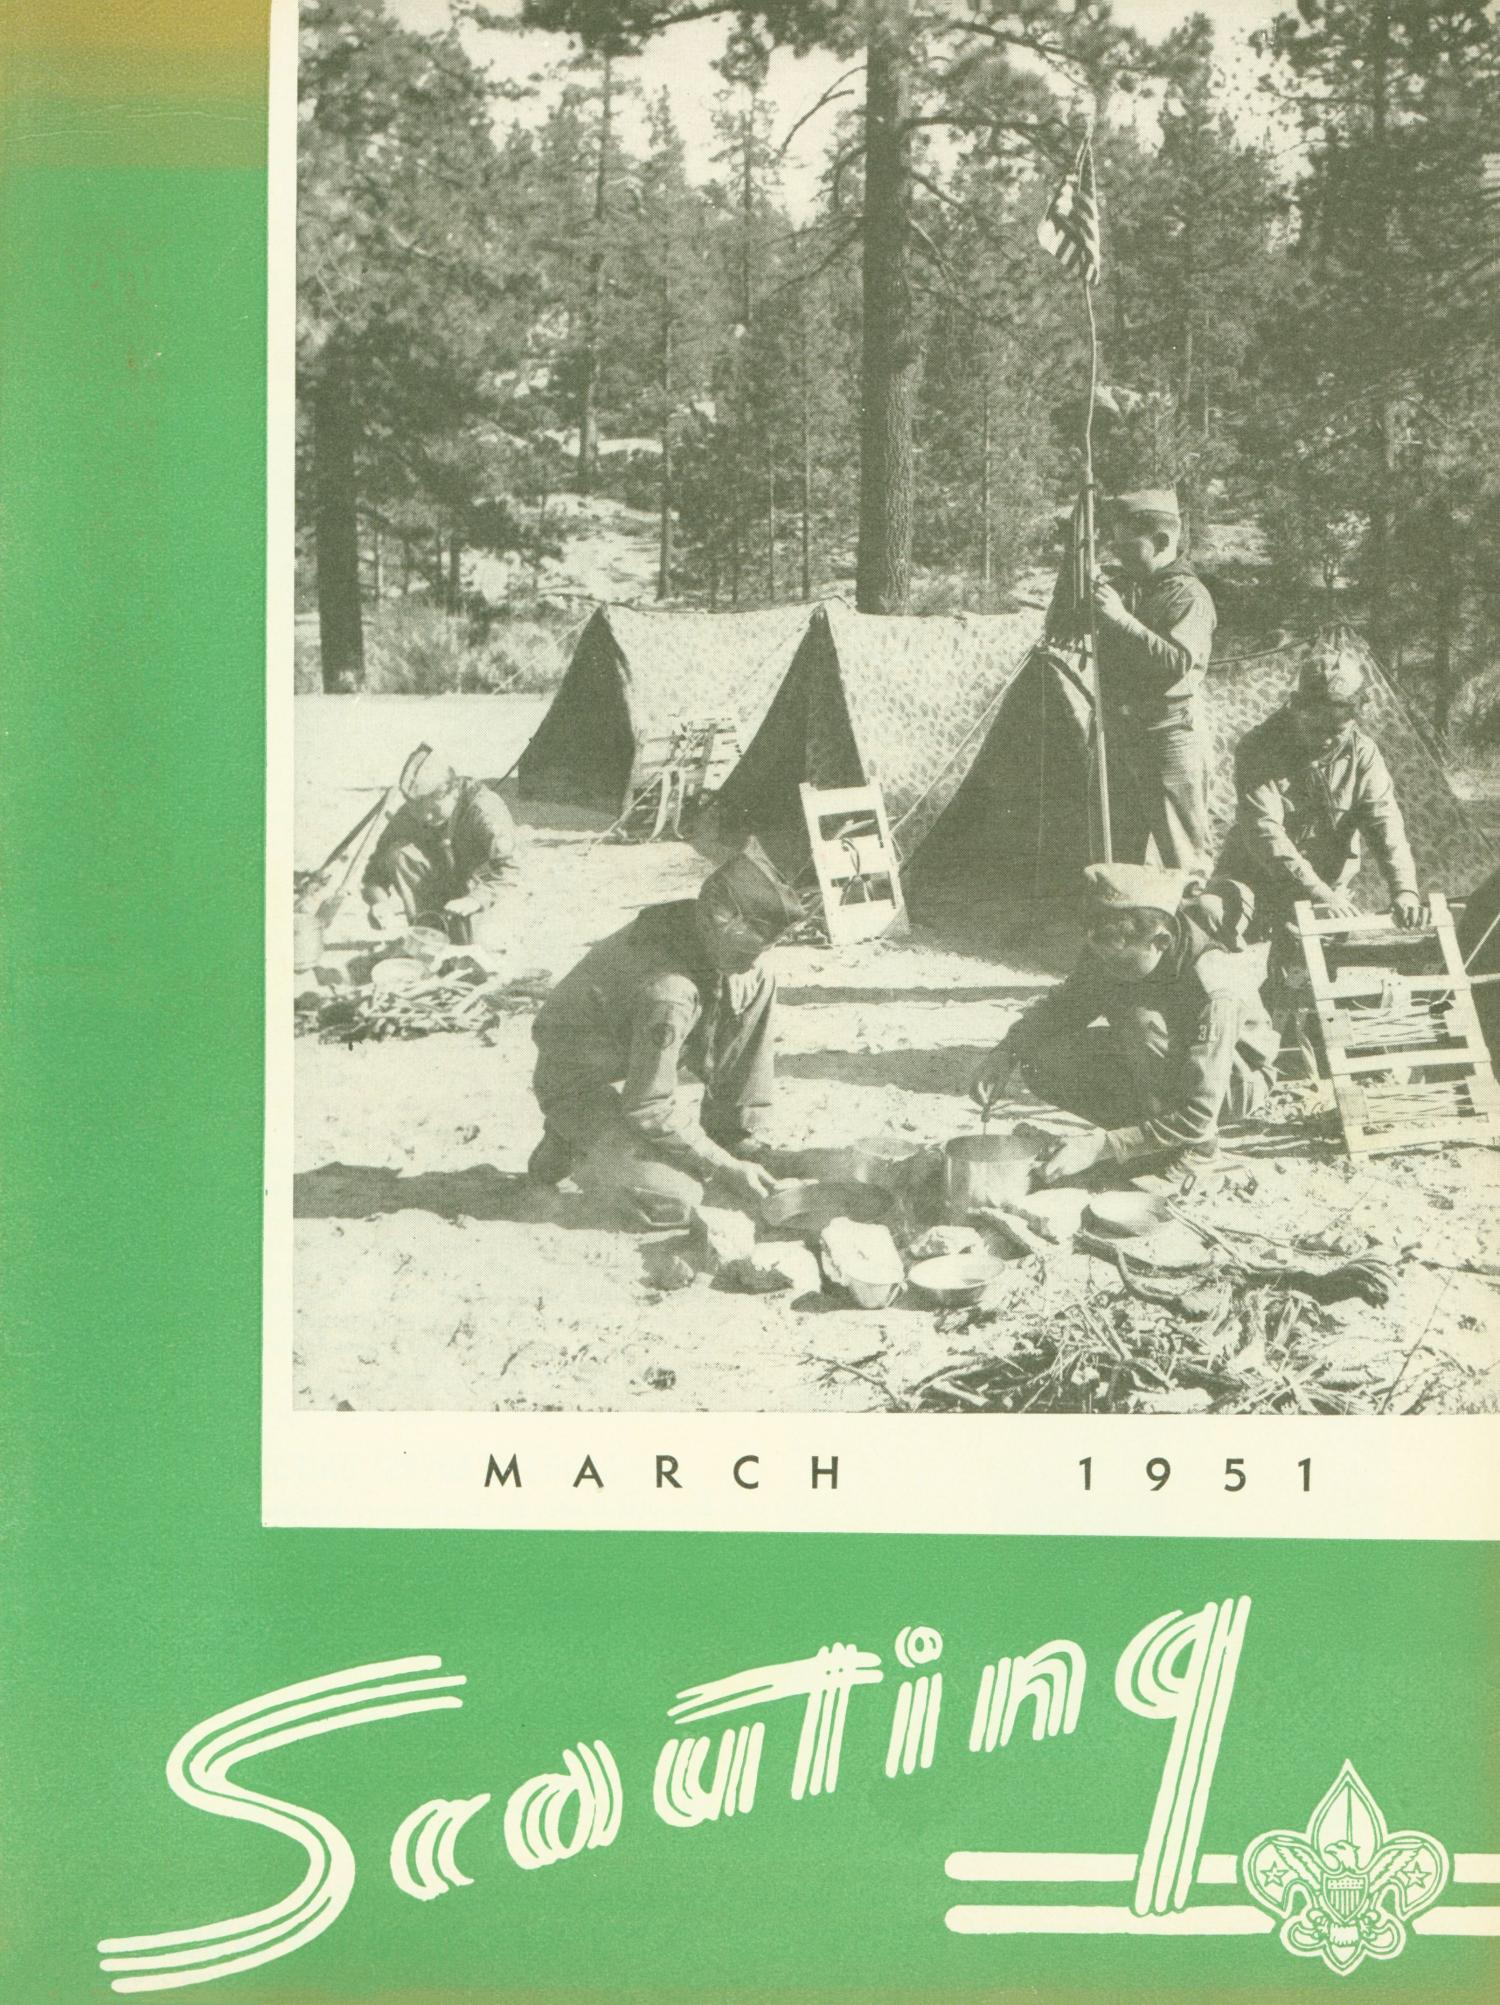 Scouting, Volume 39, Number 3, March 1951                                                                                                      Front Cover